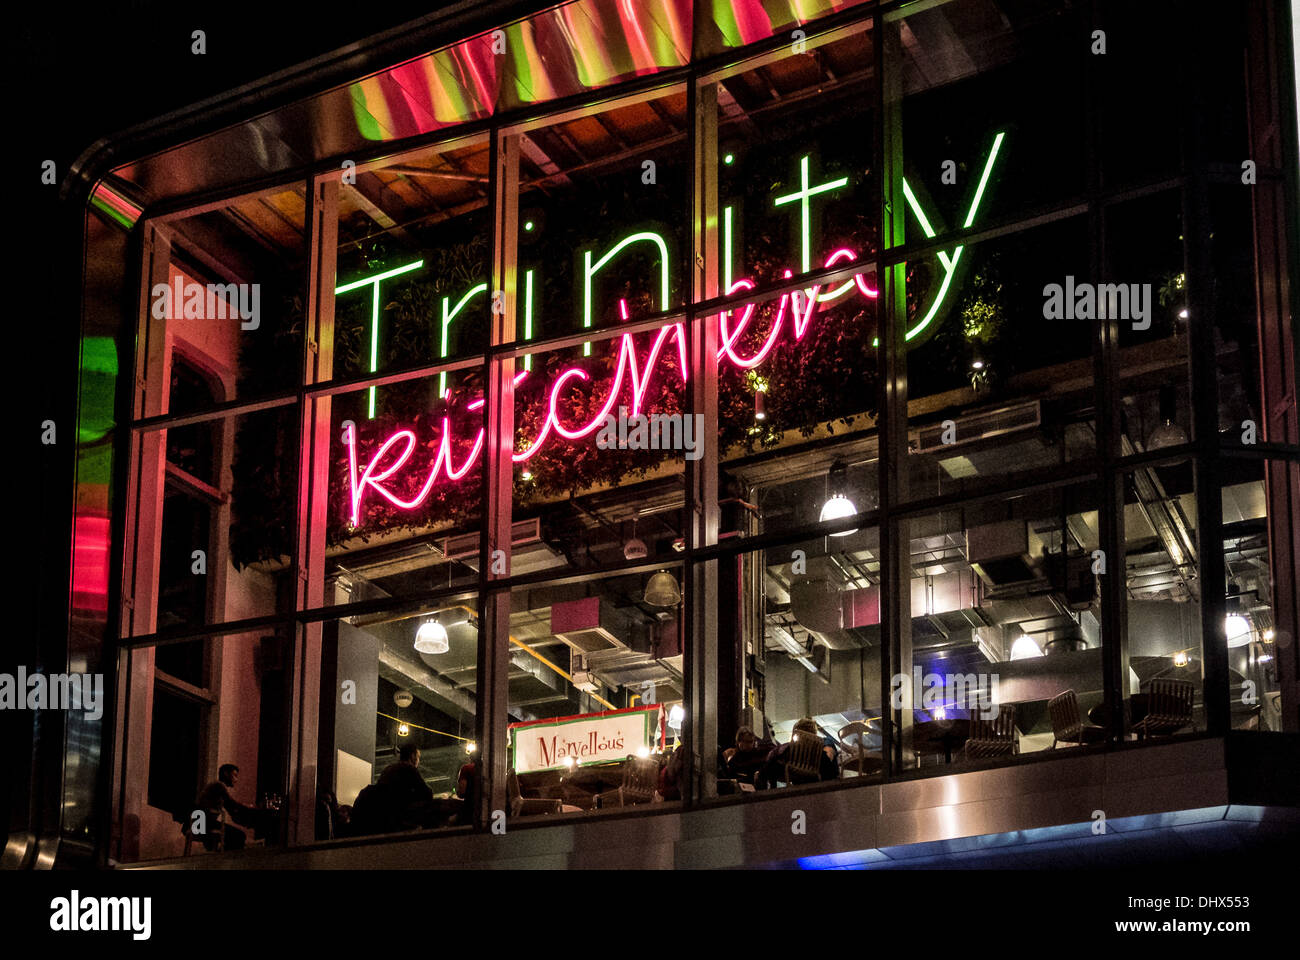 Trinity Kitchen neon sign, Trinity Shopping Centre, Leeds, UK. - Stock Image